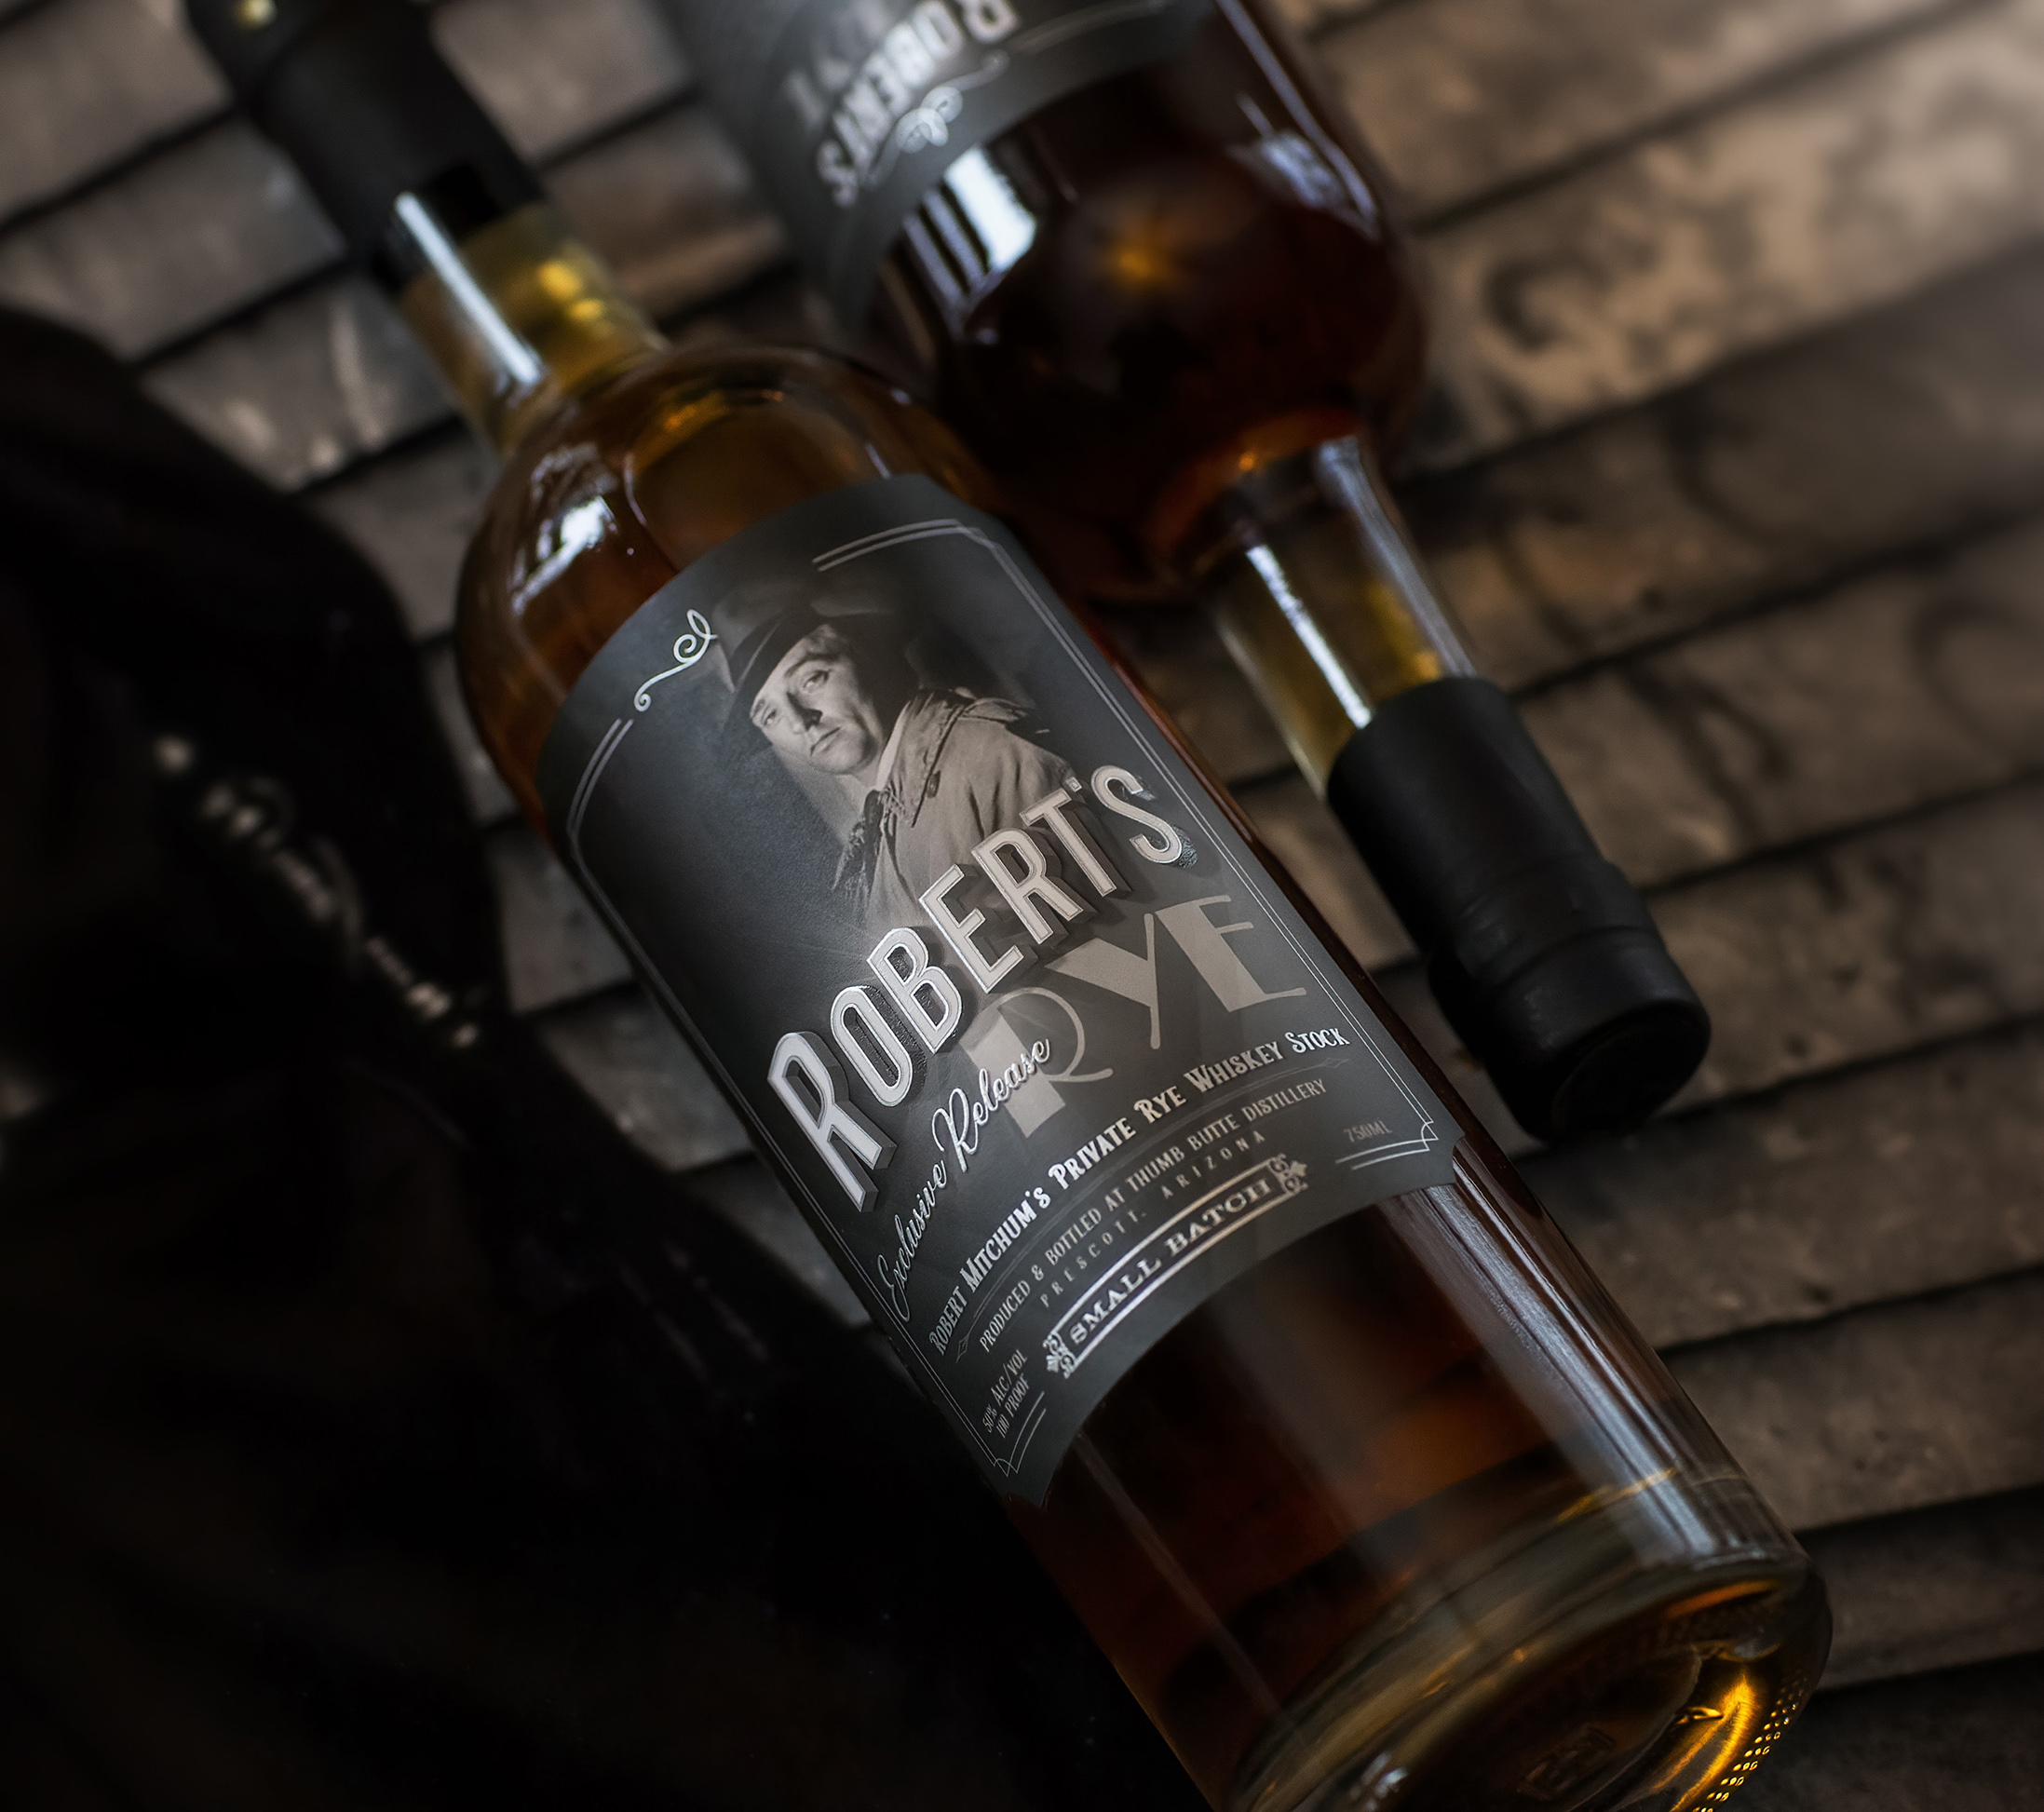 Maverick Design Designs New Label for Robert's Rye Whiskey for Thumb Butte Distillery